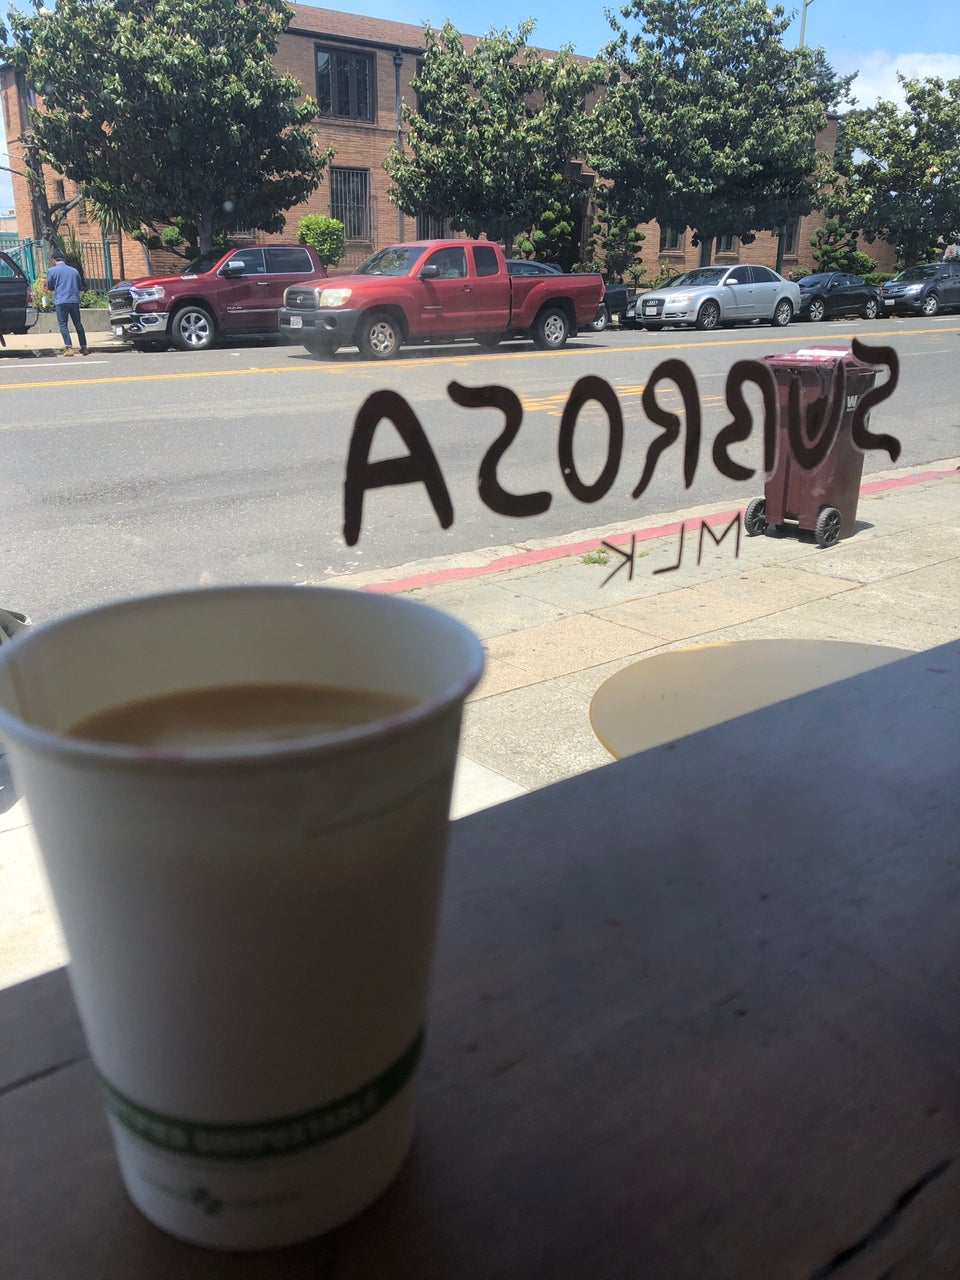 Subrosa Coffee MLK 4008 Martin Luther King Jr Way, Oakland